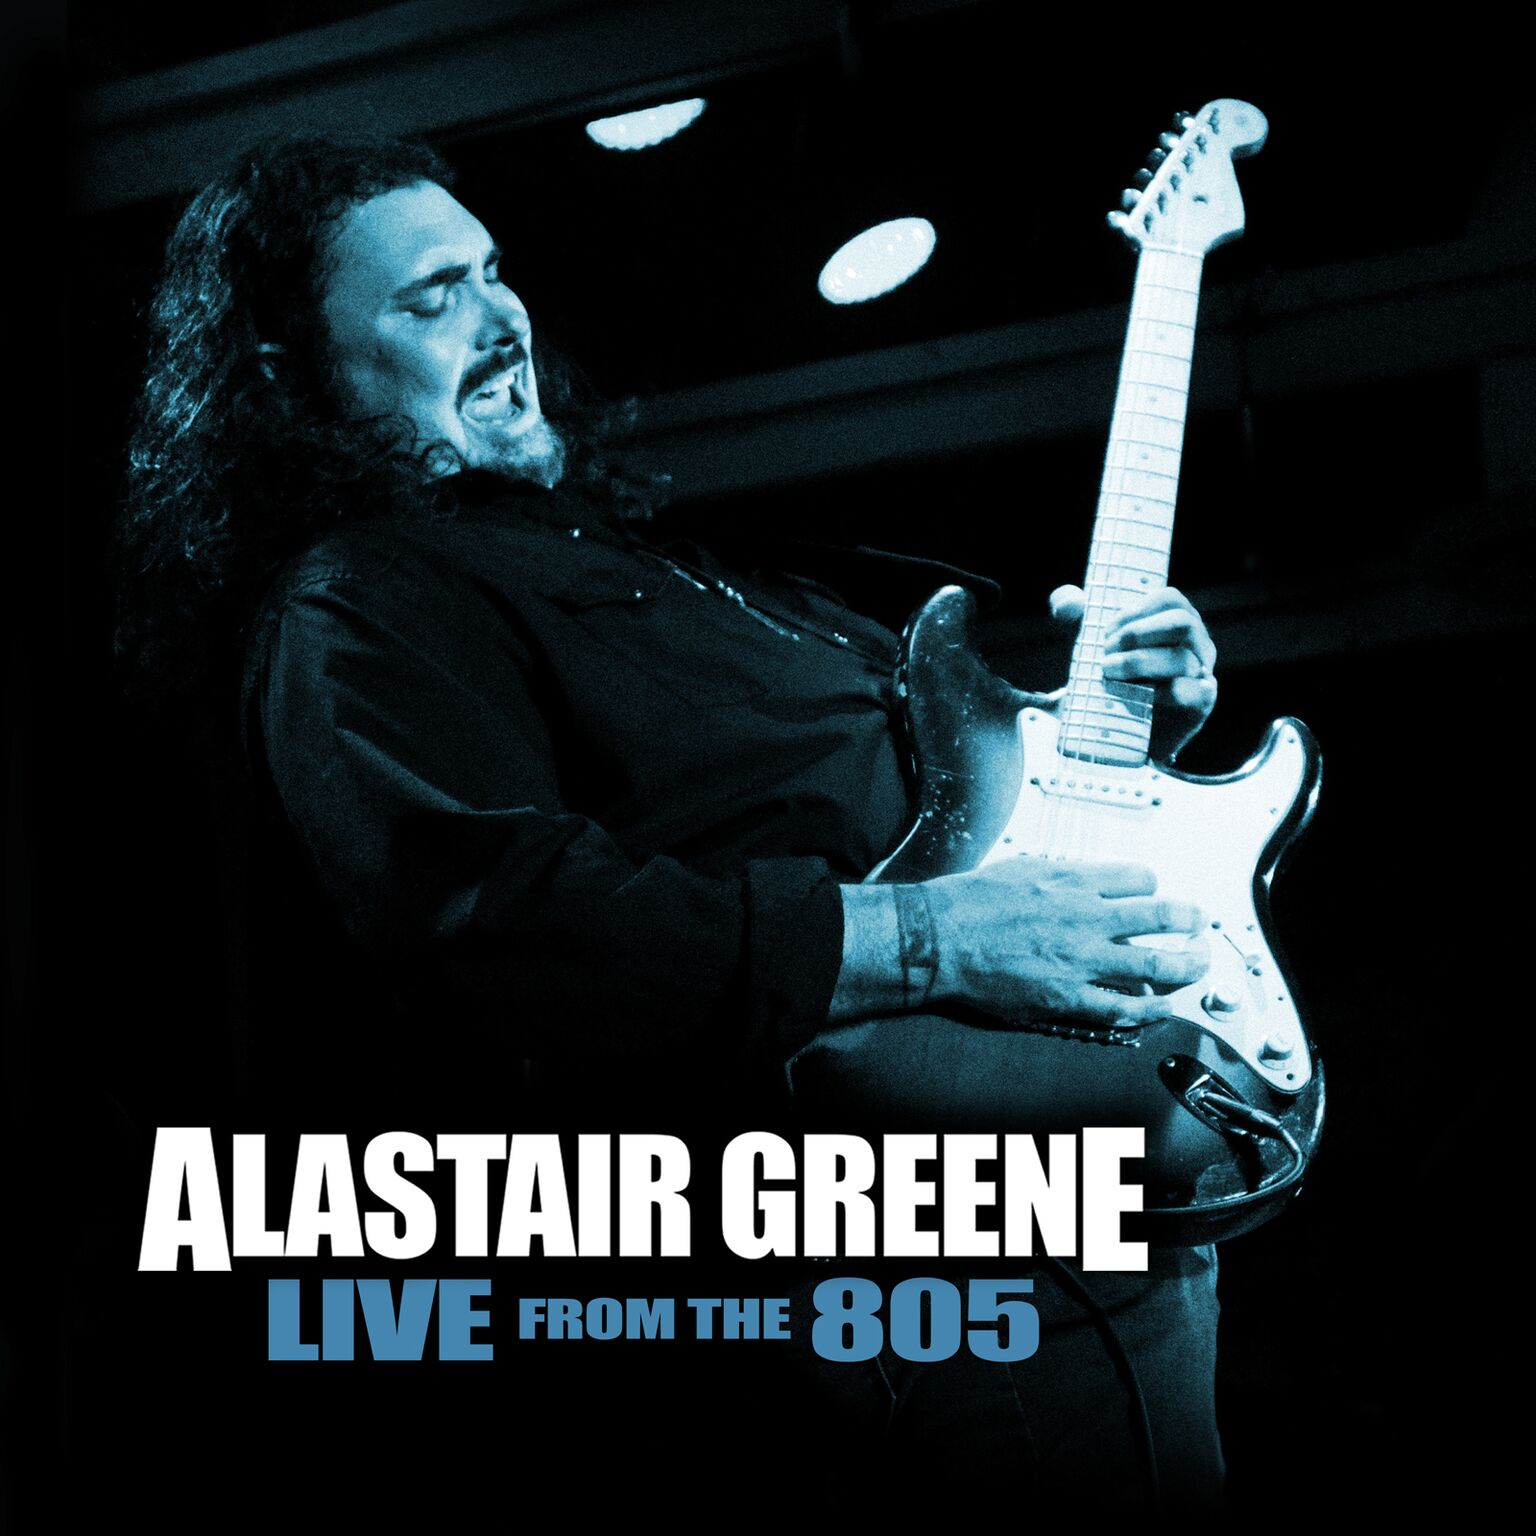 Alastair Greene - LIVE FROM THE 805 - Rip Cat Records